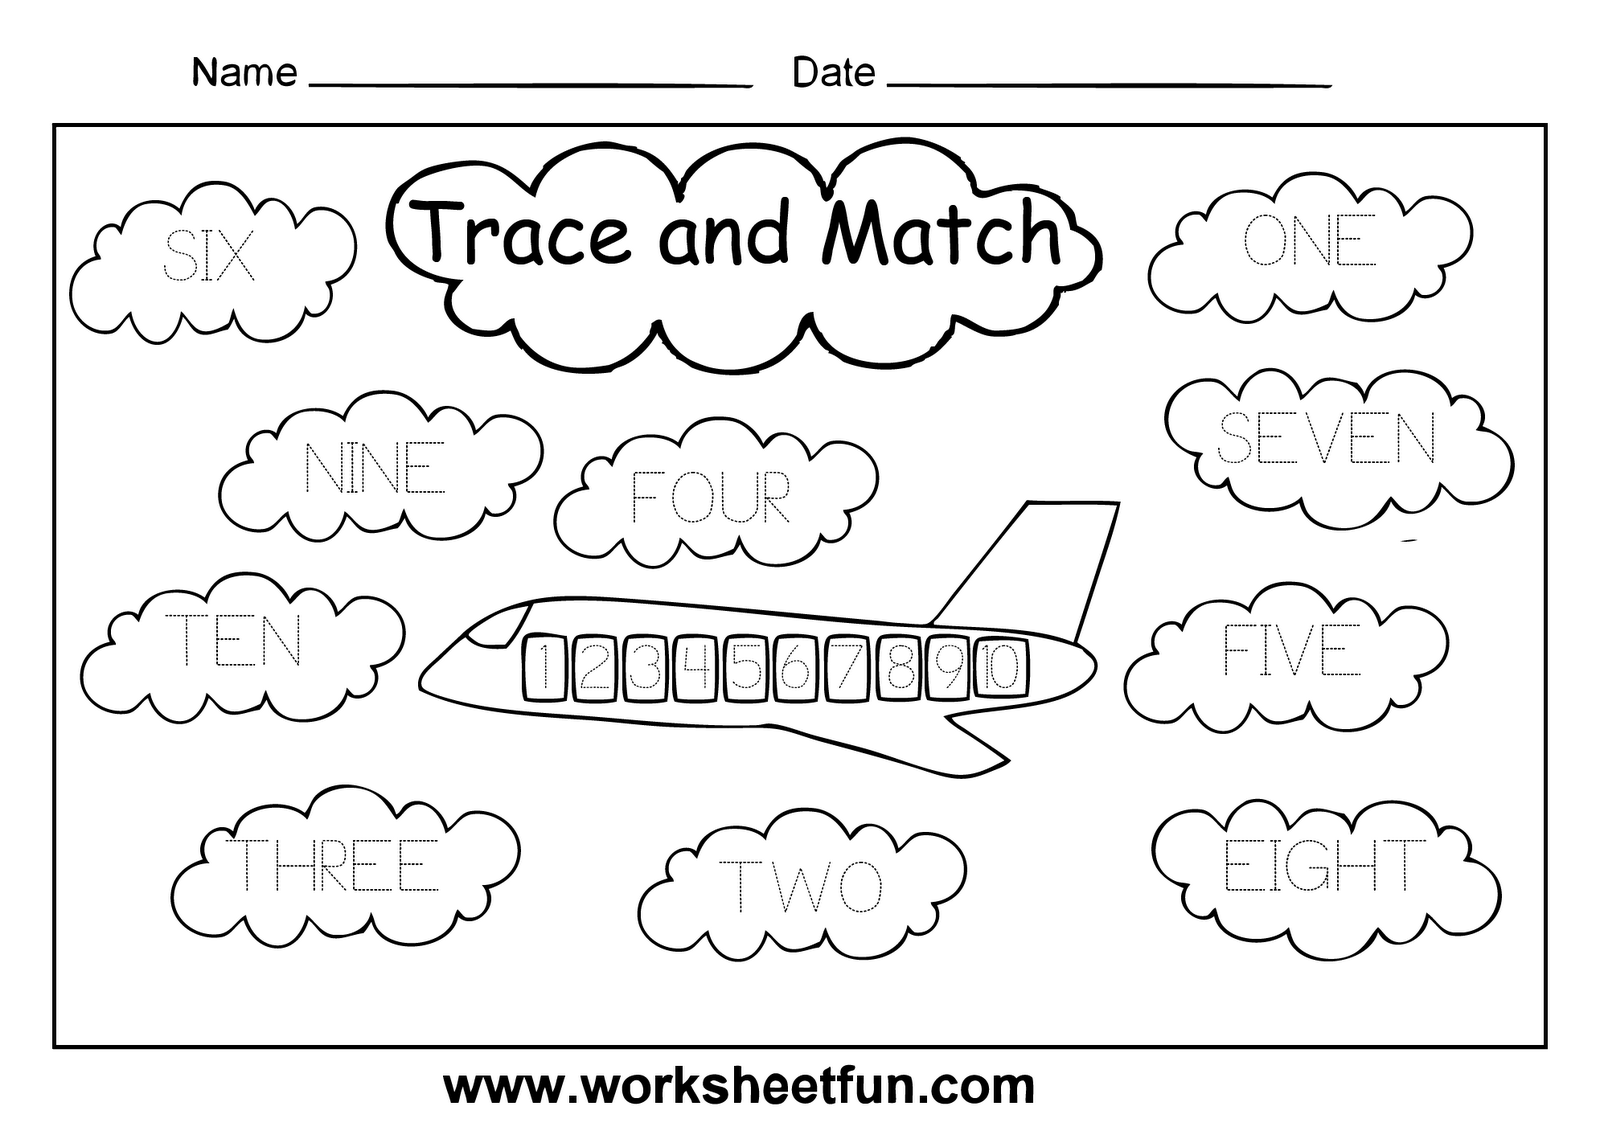 Weirdmailus  Personable Worksheet Numbers    Reocurent With Engaging When Worksheets Besides Scissor Skills Worksheets Furthermore Sense Organs Worksheets For Grade  With Astonishing Worksheet On Parallelograms Also Rhyming Patterns Worksheets In Addition Fourth Grade Measurement Worksheets And Th Grade Reading Comprehension Worksheets As Well As Prime Cost Worksheet Additionally Secants Tangents And Angle Measures Worksheet From Reocurentcom With Weirdmailus  Engaging Worksheet Numbers    Reocurent With Astonishing When Worksheets Besides Scissor Skills Worksheets Furthermore Sense Organs Worksheets For Grade  And Personable Worksheet On Parallelograms Also Rhyming Patterns Worksheets In Addition Fourth Grade Measurement Worksheets From Reocurentcom